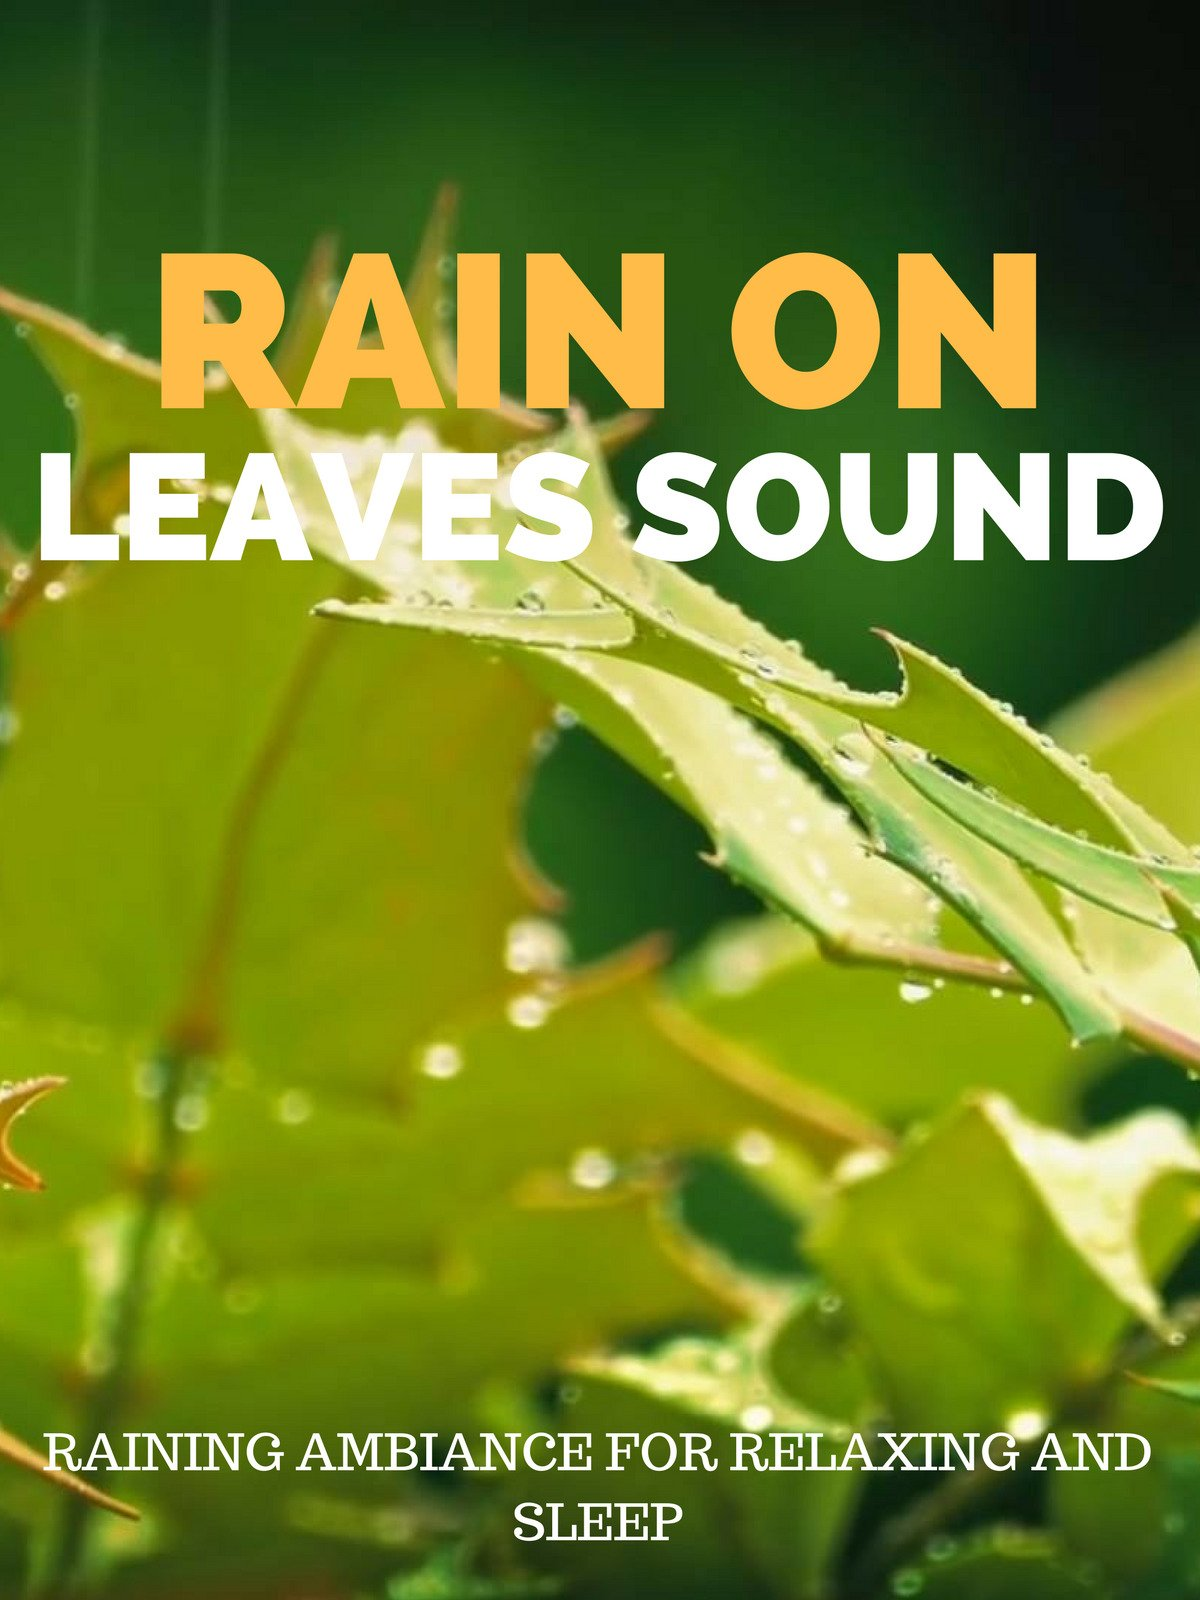 Rain on Leaves Sound Raining Ambience for Relaxing and Sleep